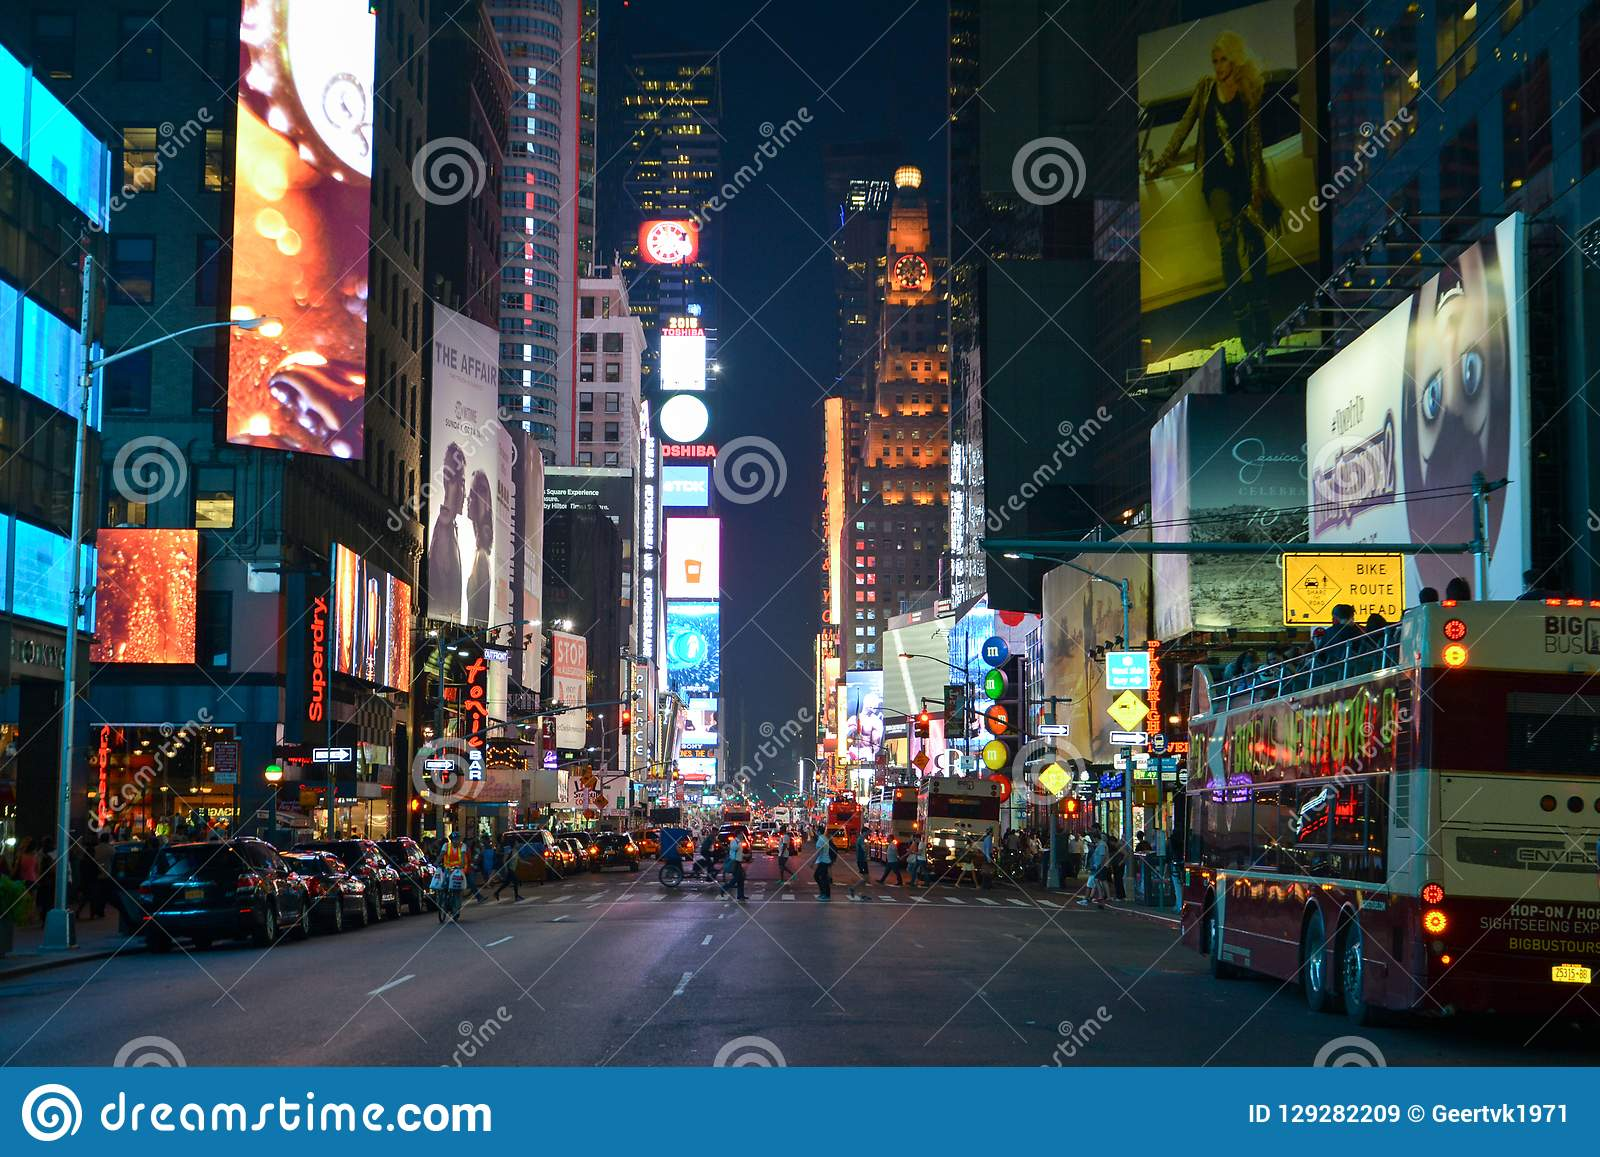 Times Square in the evening taken from 7th avenue